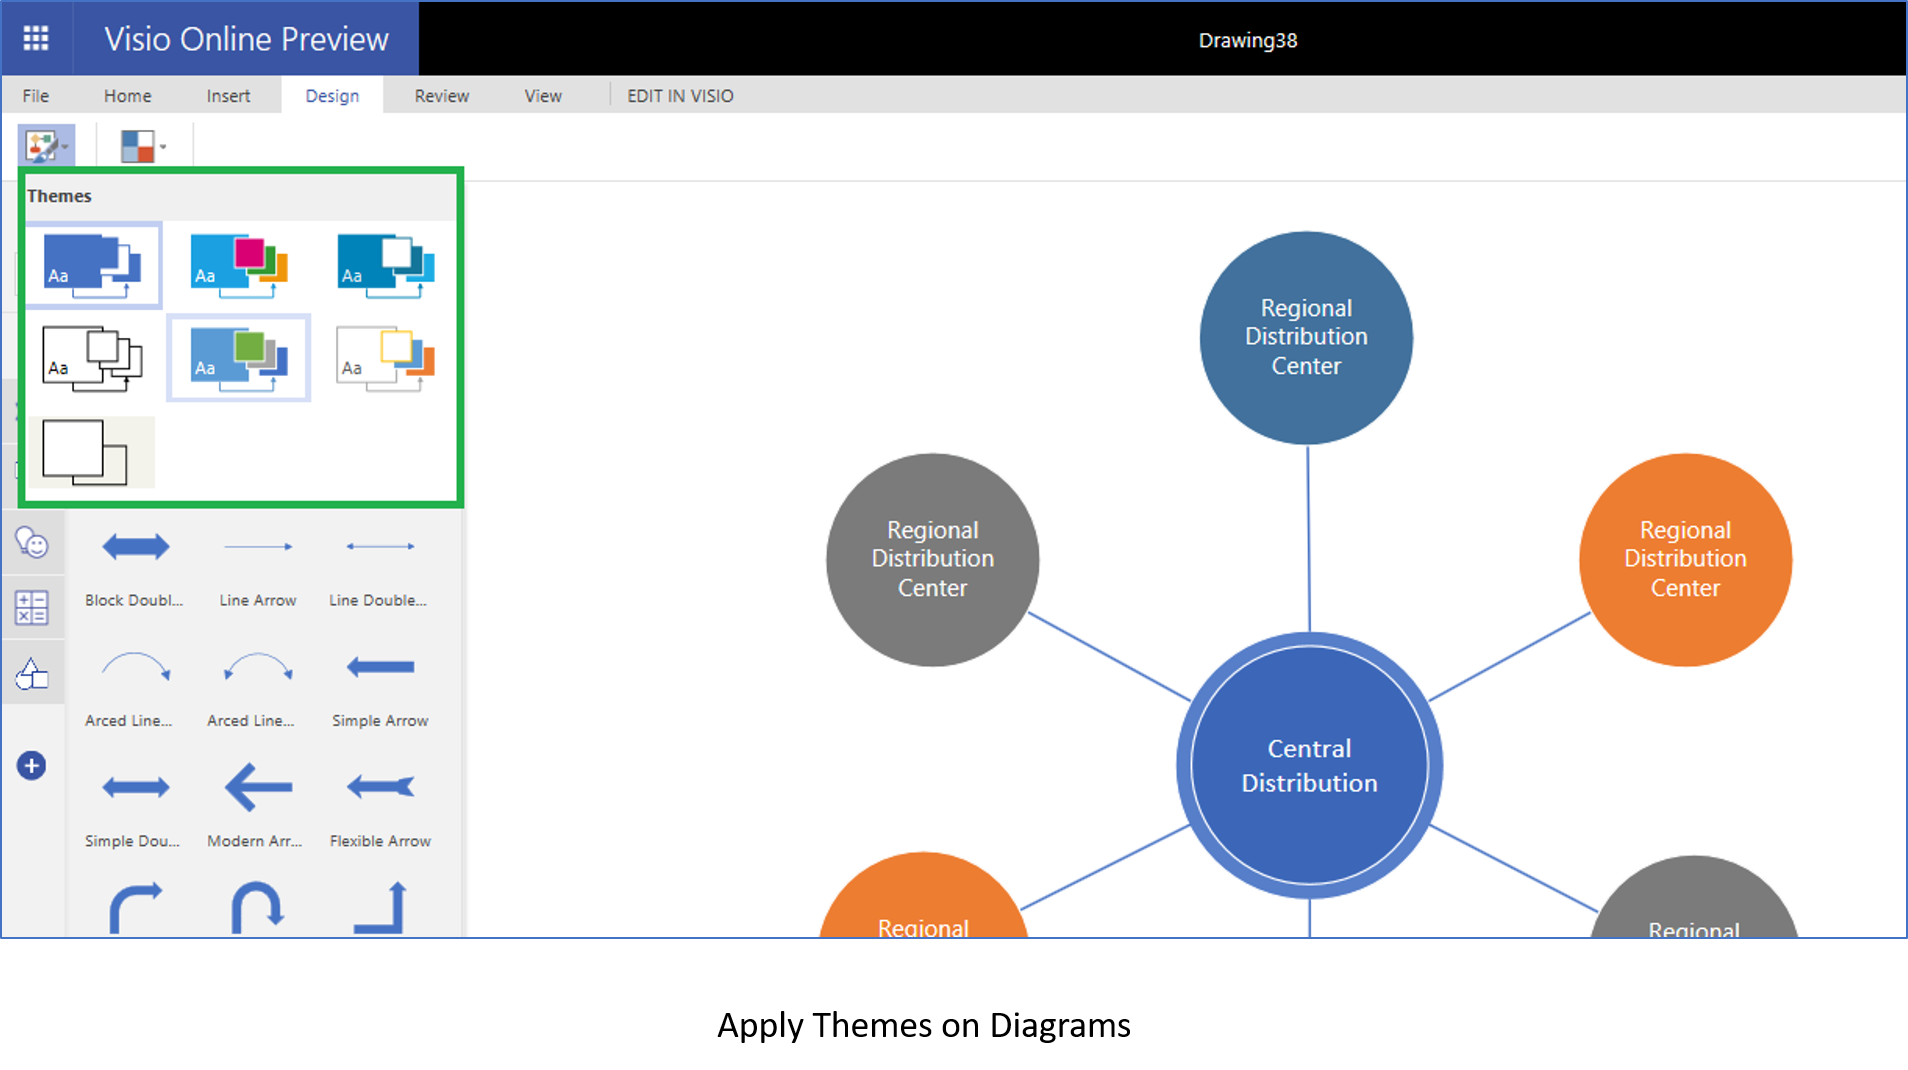 visio online which is in public preview allows anyone to create edit and share diagrams through any web browser based on the feedback from users - Ms Visio Online Free